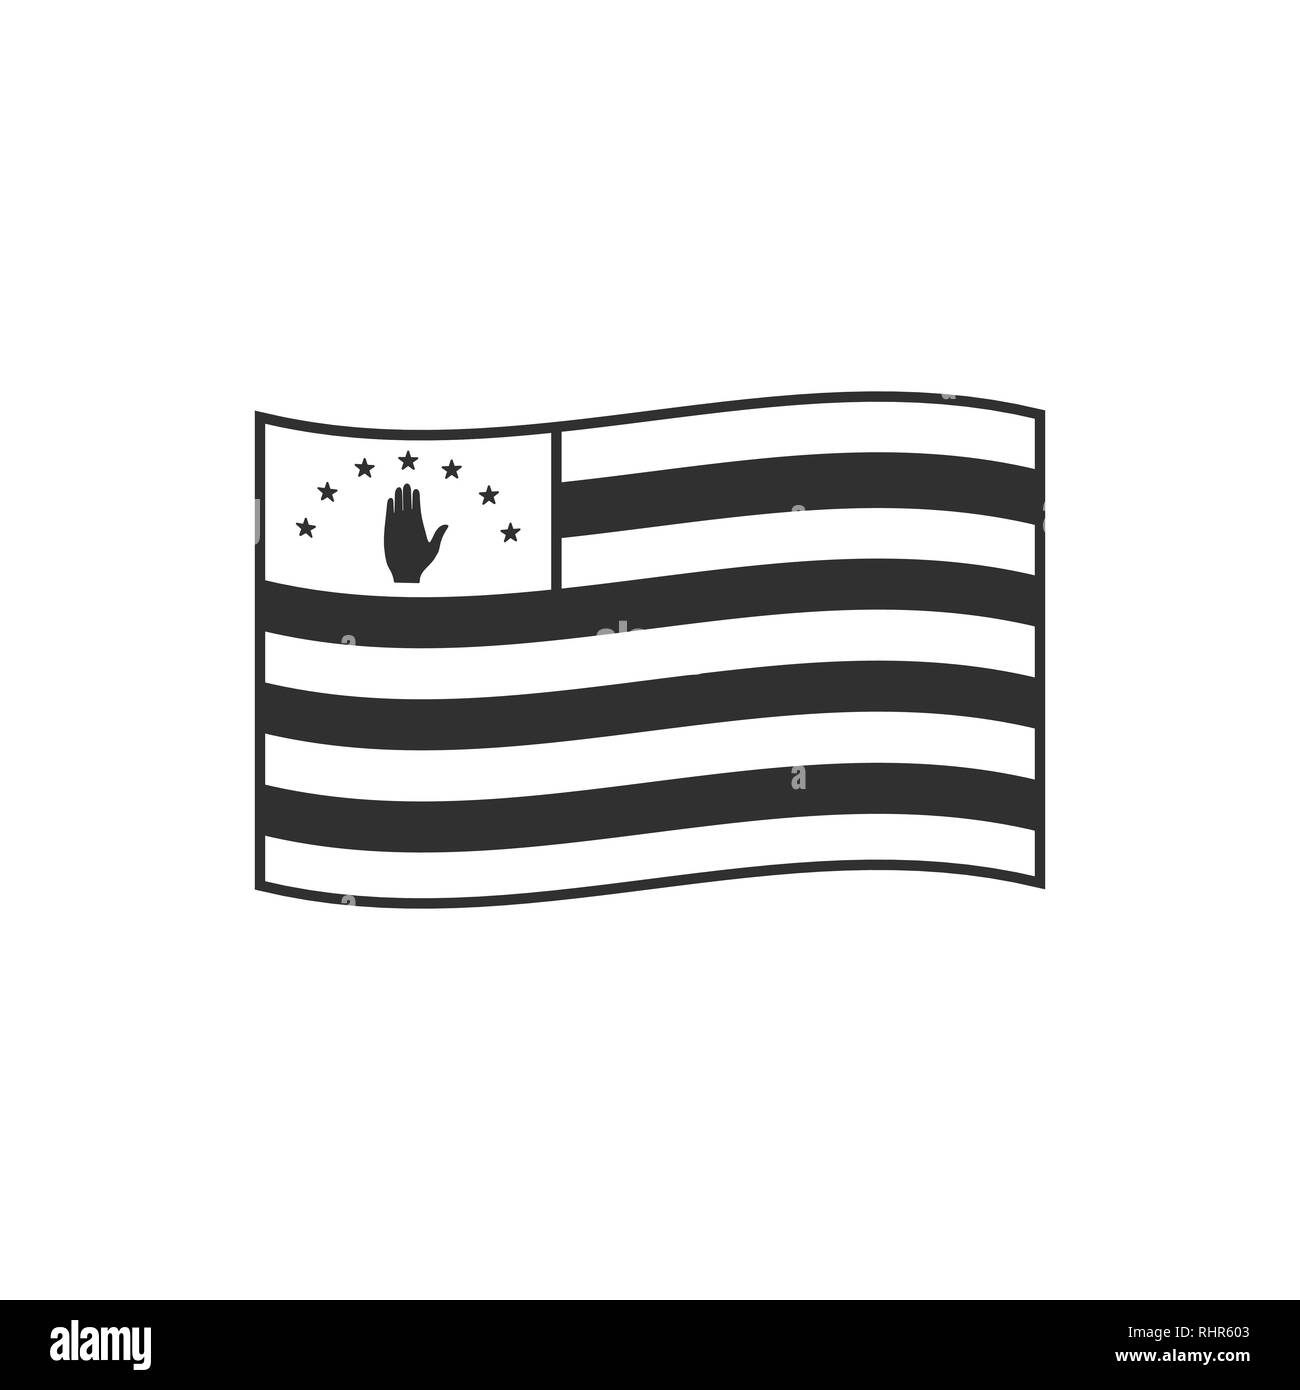 Abkhazia flag icon in black outline flat design. Independence day or National day holiday concept. - Stock Vector